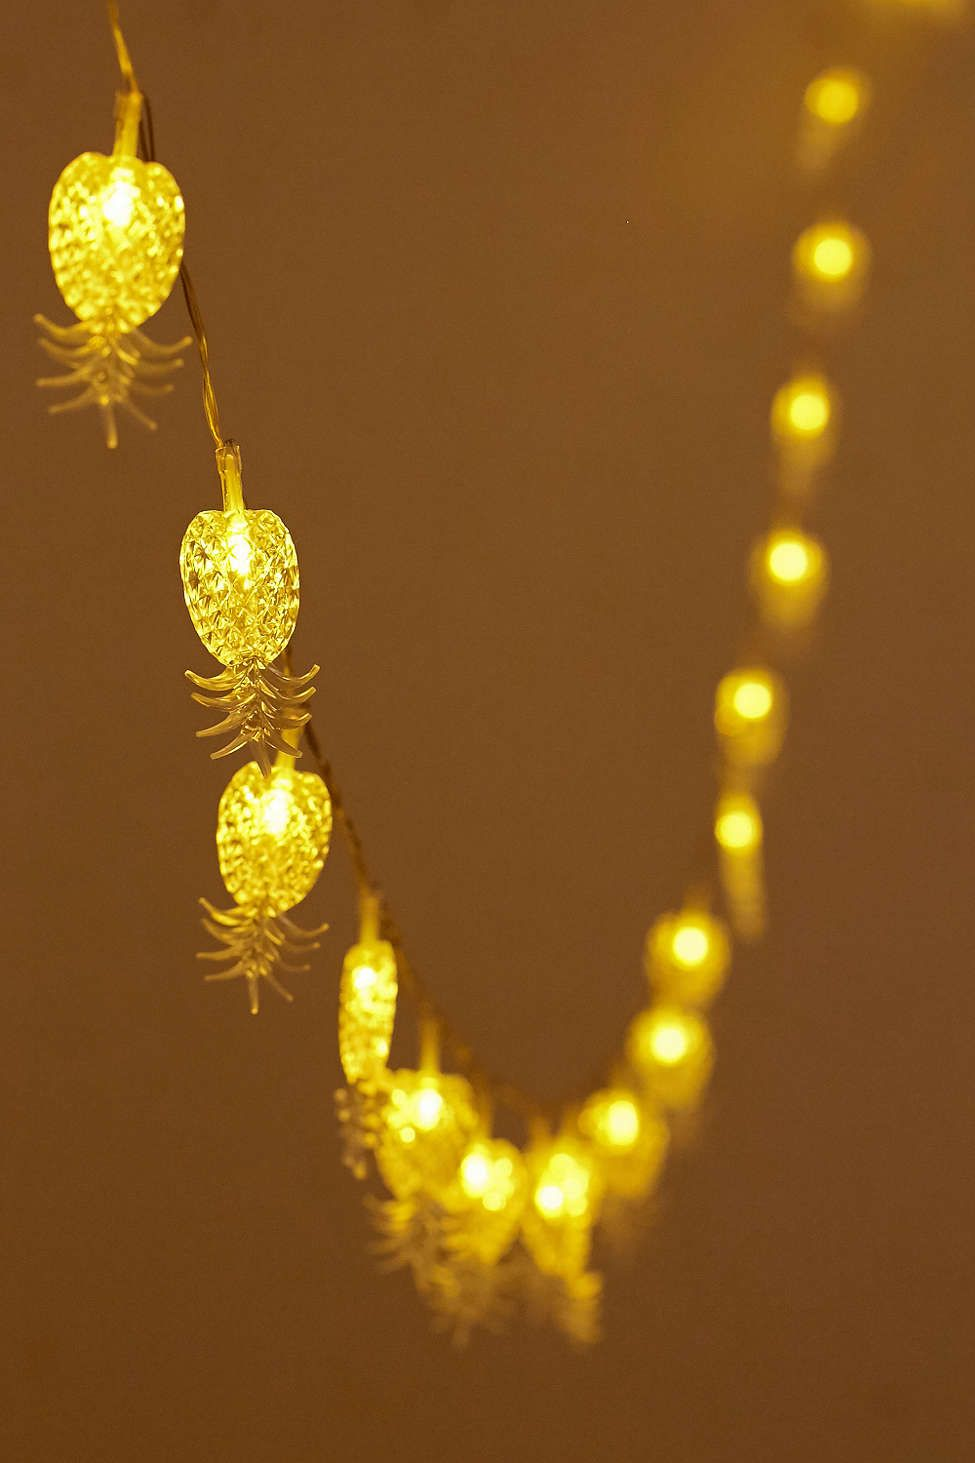 Battery Powered String Lights Urban Outfitters : Pineapple Battery Powered String Lights String lights, Urban outfitters and Urban